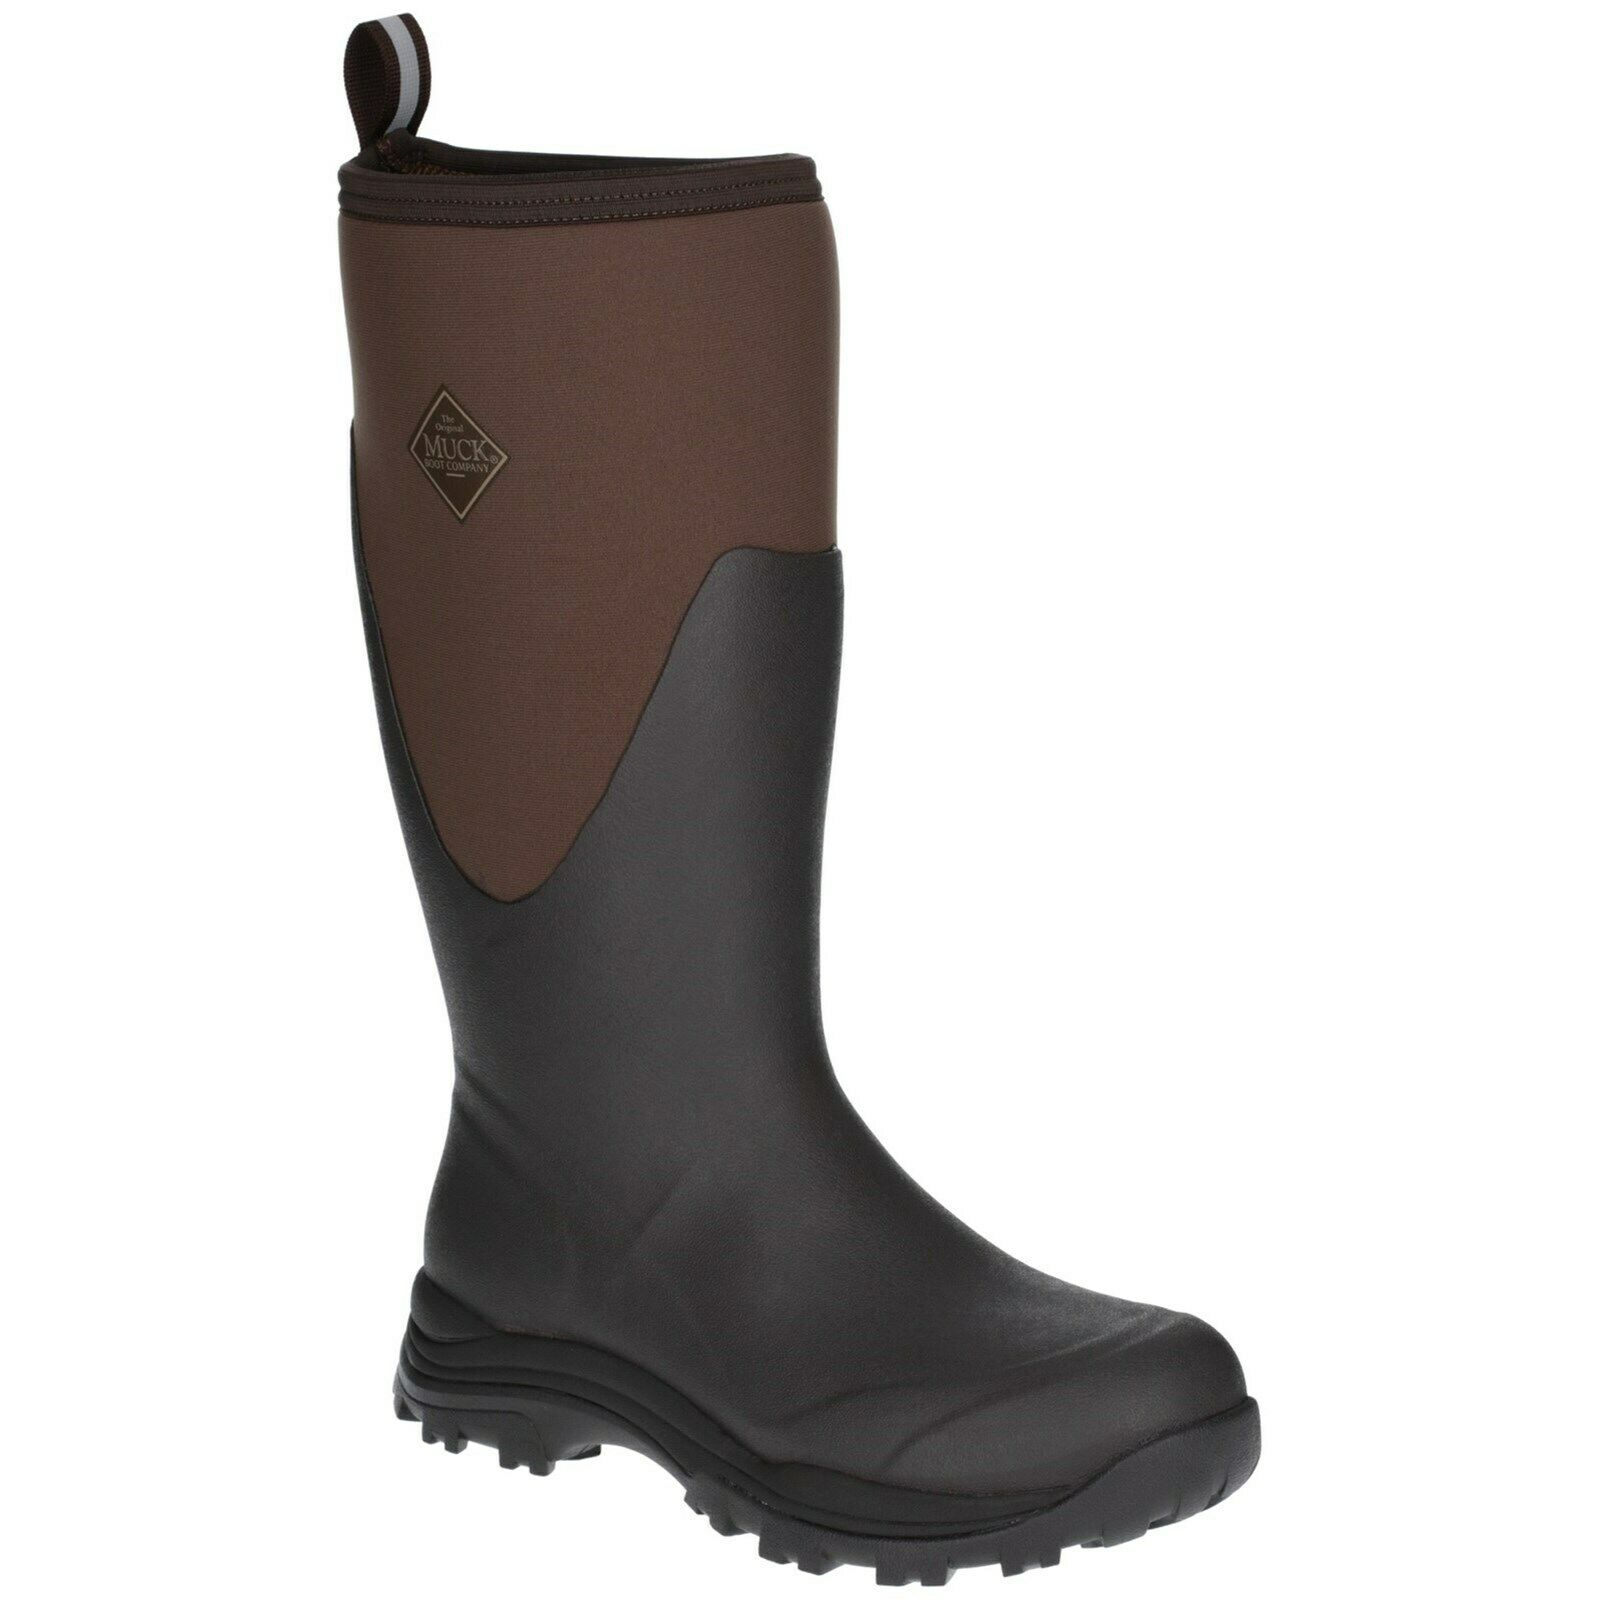 Muck Stiefel Outpost Wellington Stiefel Mens Tall Waterproof Durable Outdoor schuhe